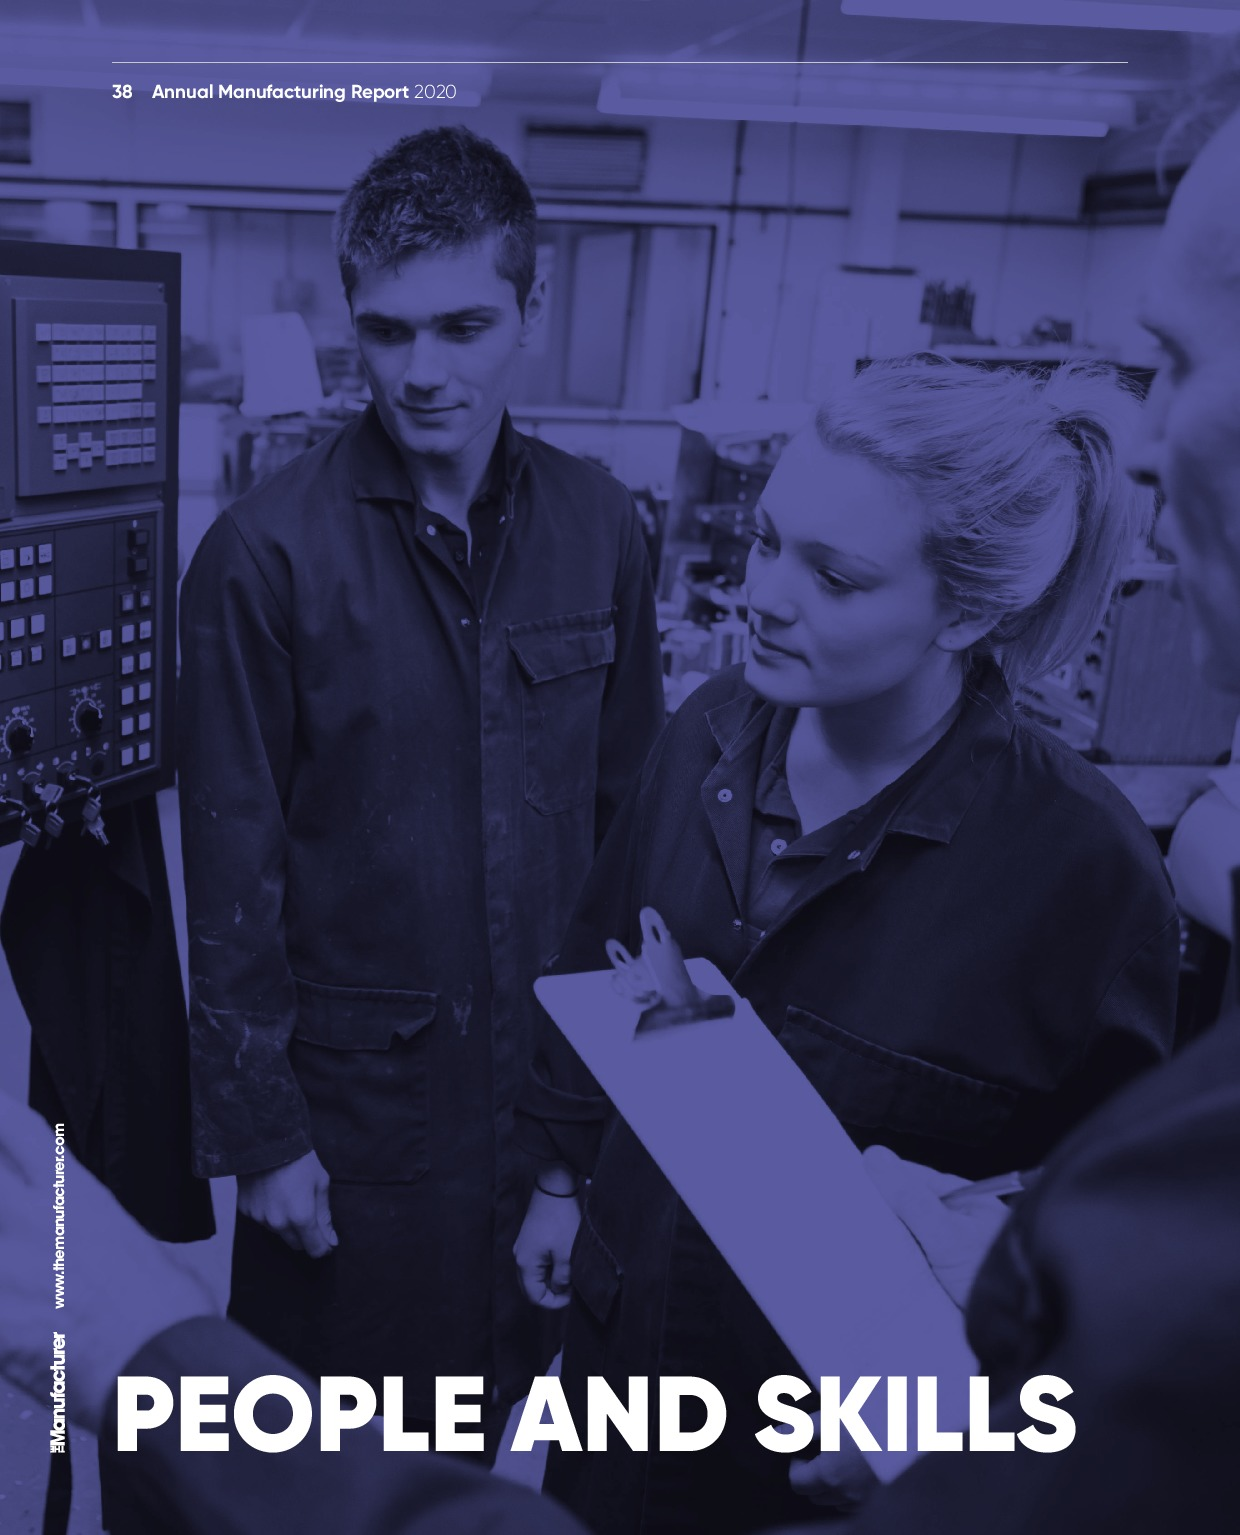 Annual Manufacturing Report 2020   Page 38